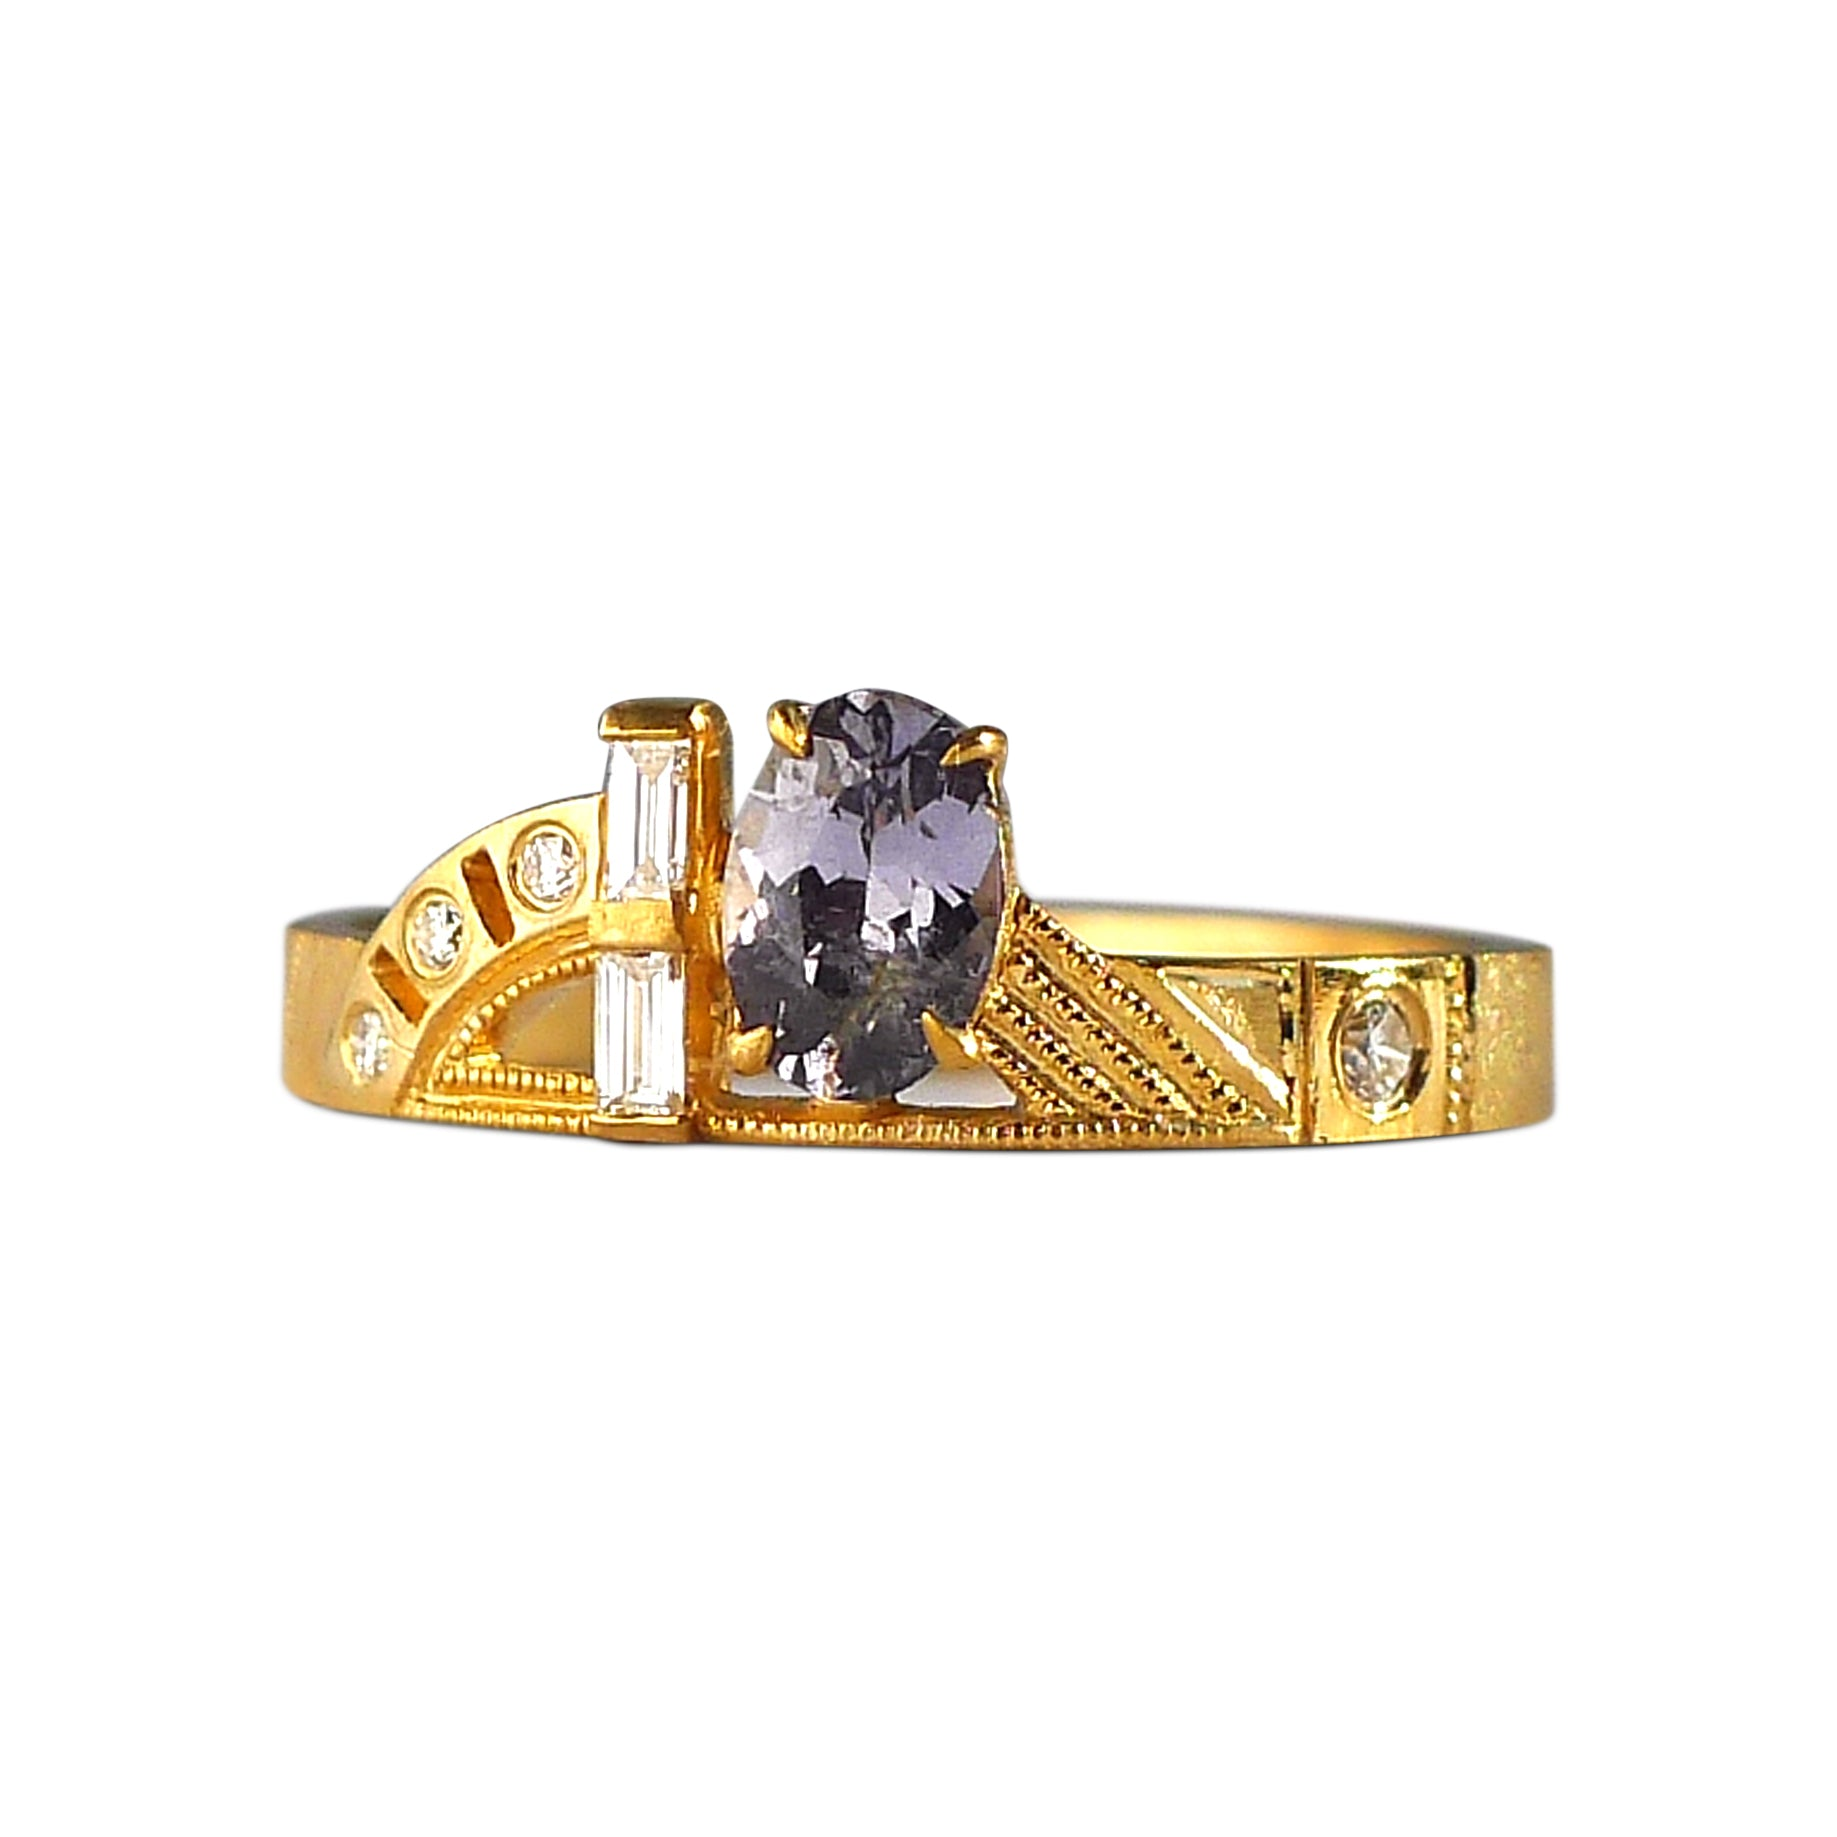 Composition Ring w/ Lavender Spinel